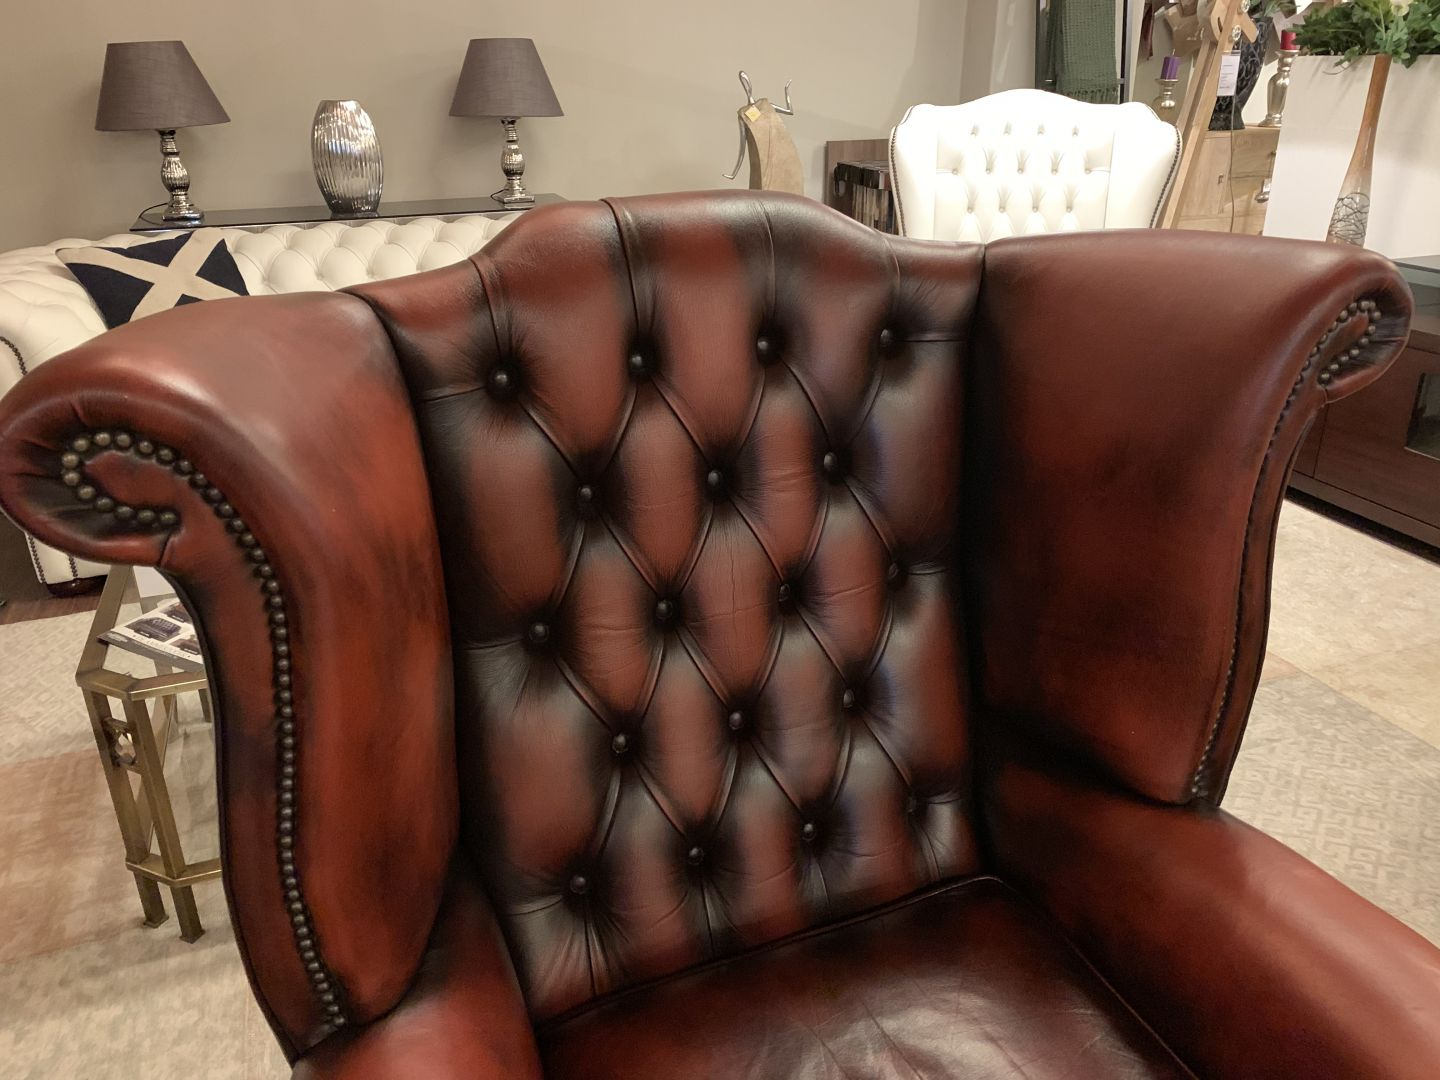 Chesterfield Fauteuil Oxblood.Engelse Springvale Chesterfield Fauteuil In Oxblood Rood